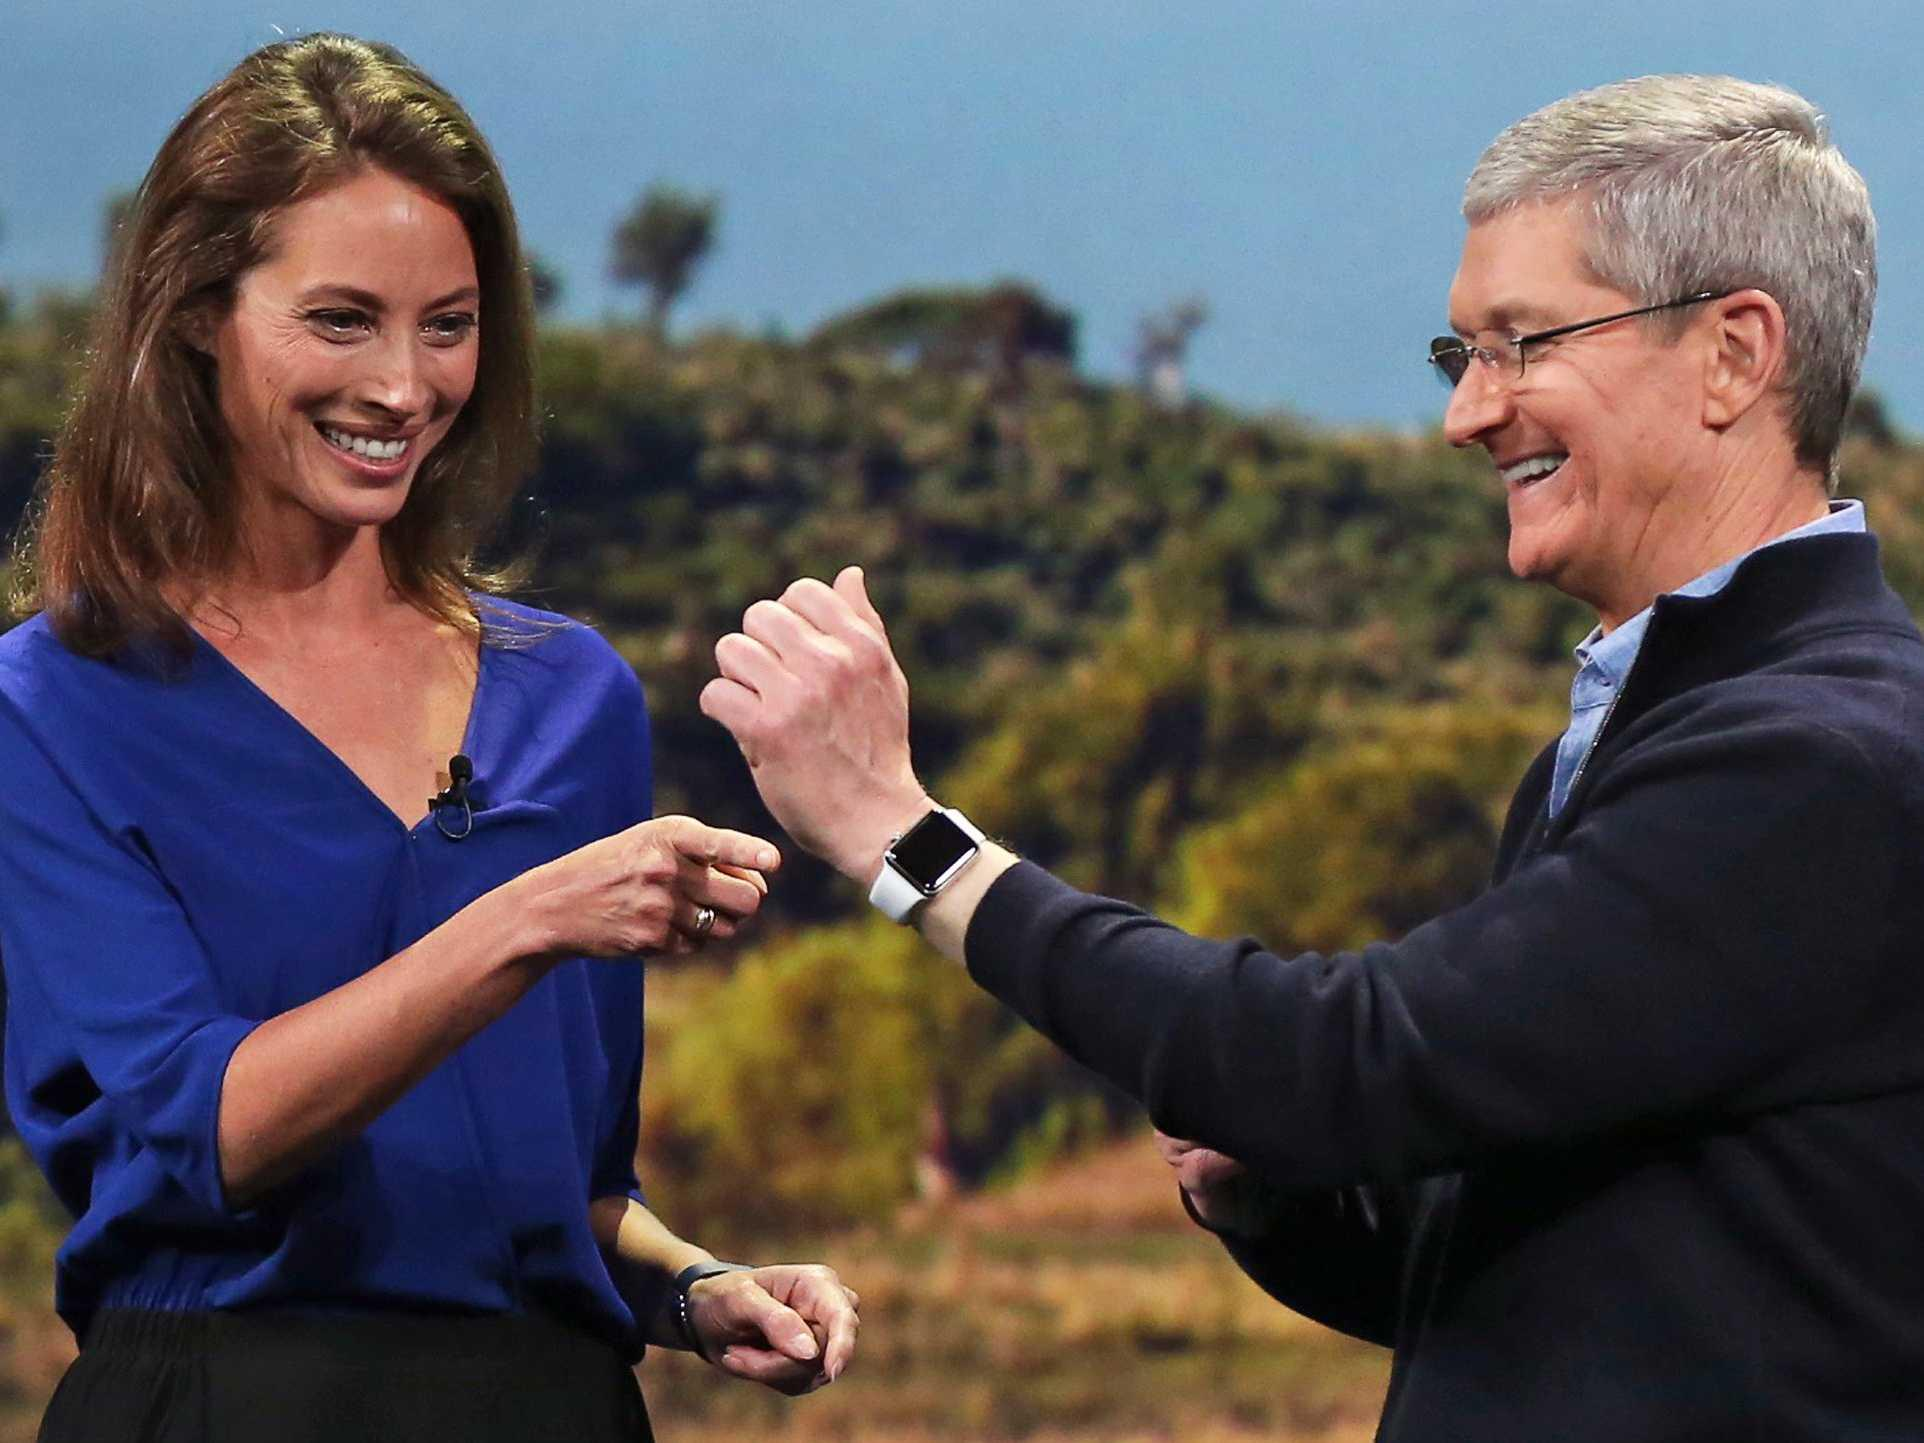 The feds say they'll keep their hands off the Apple Watch (for now)